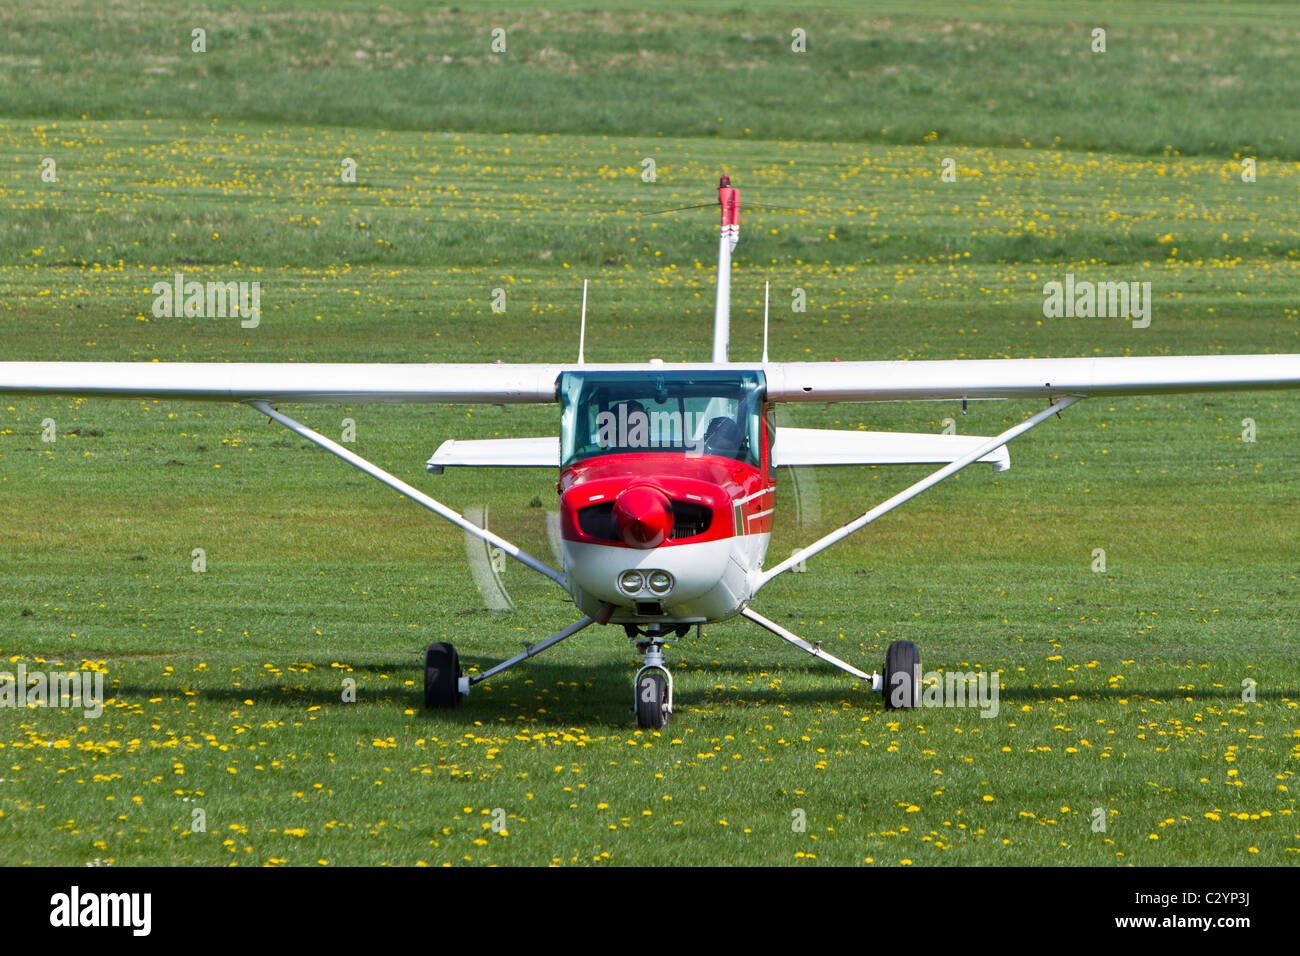 Cessna 152, reg G-GFIG, taxiing at Barton Airfield, Manchester - Stock Image